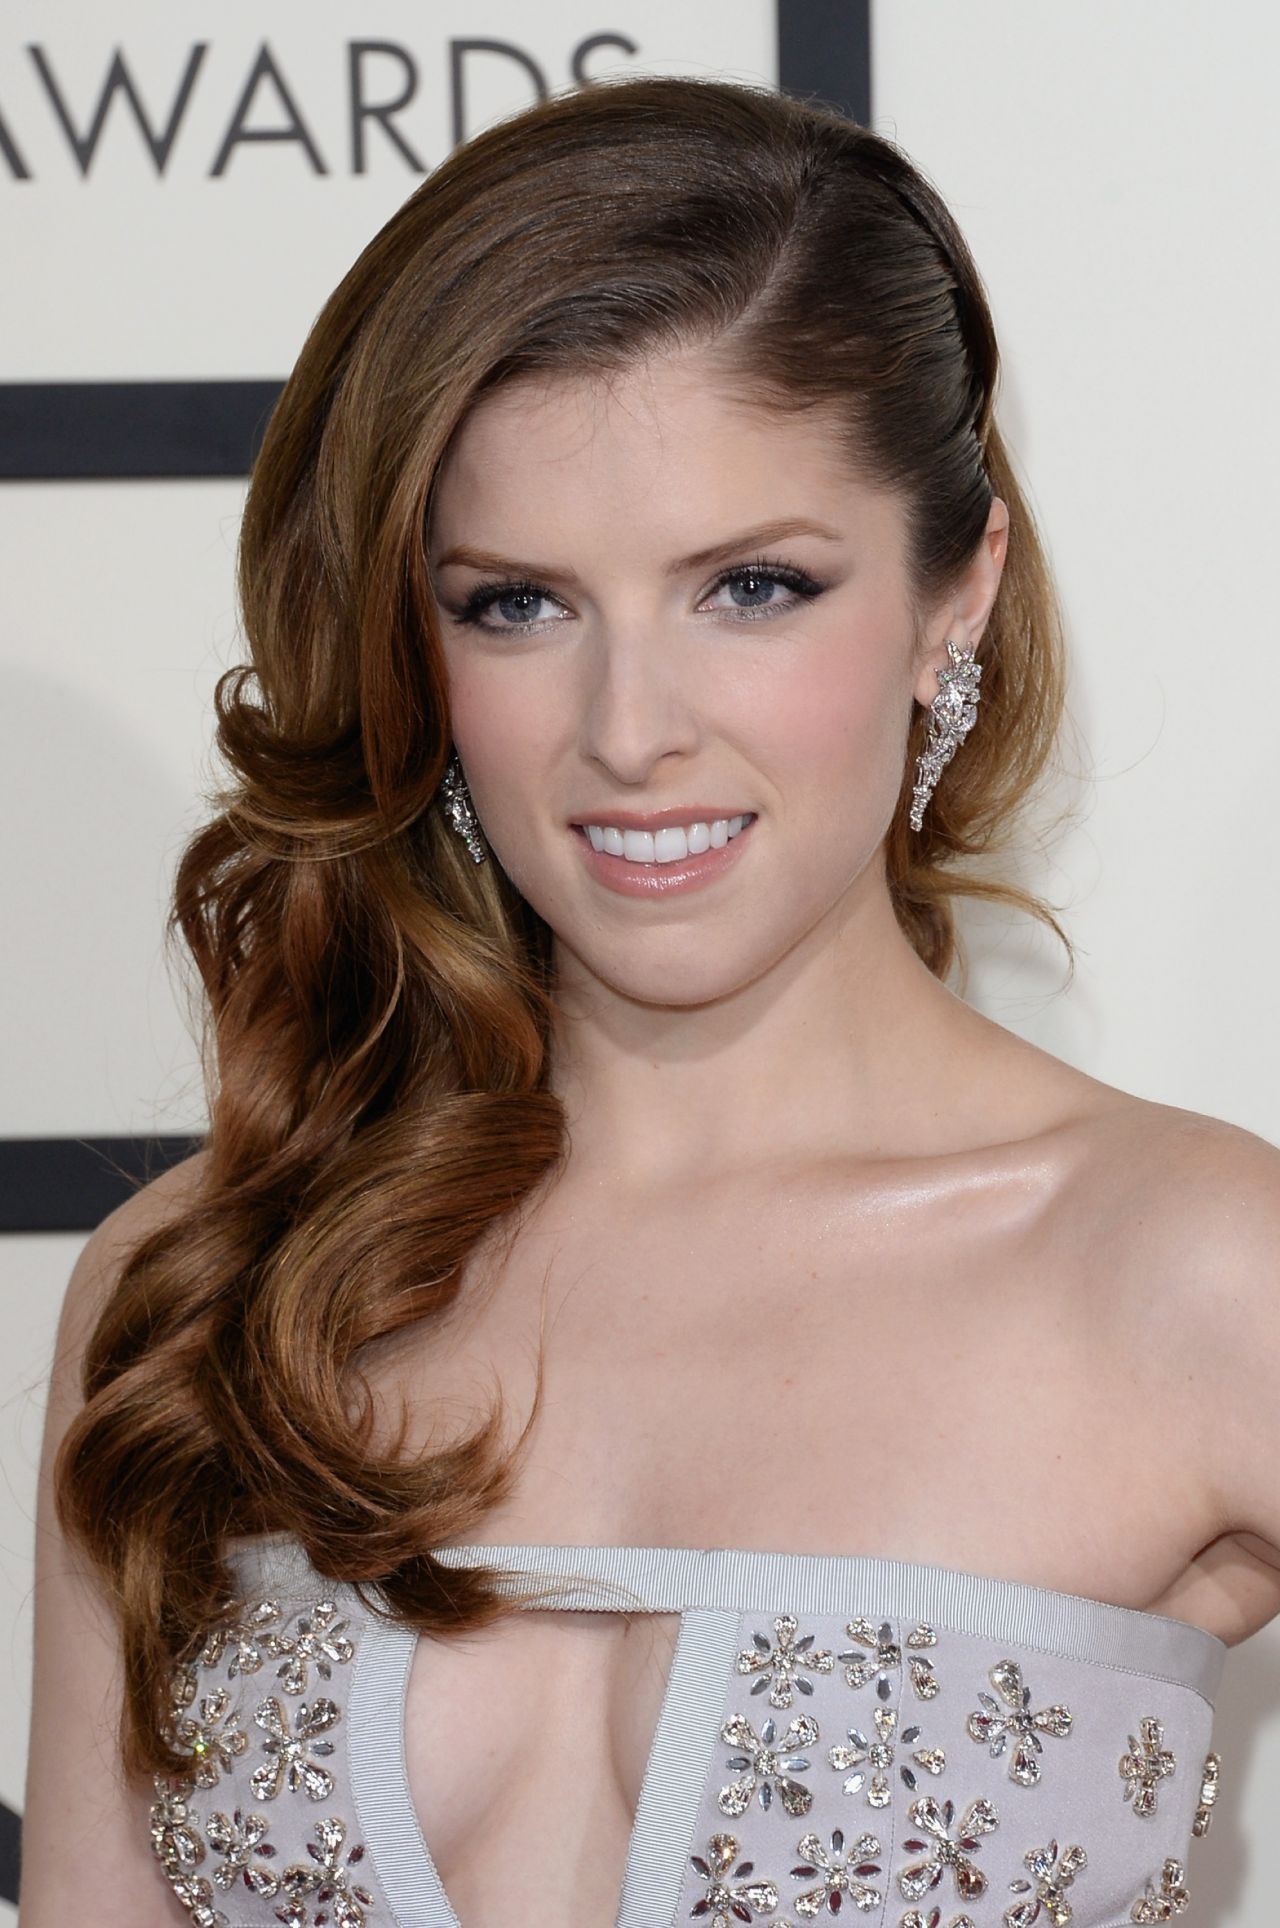 Anna Kendrick nude (14 fotos), Is a cute Topless, Twitter, cleavage 2020